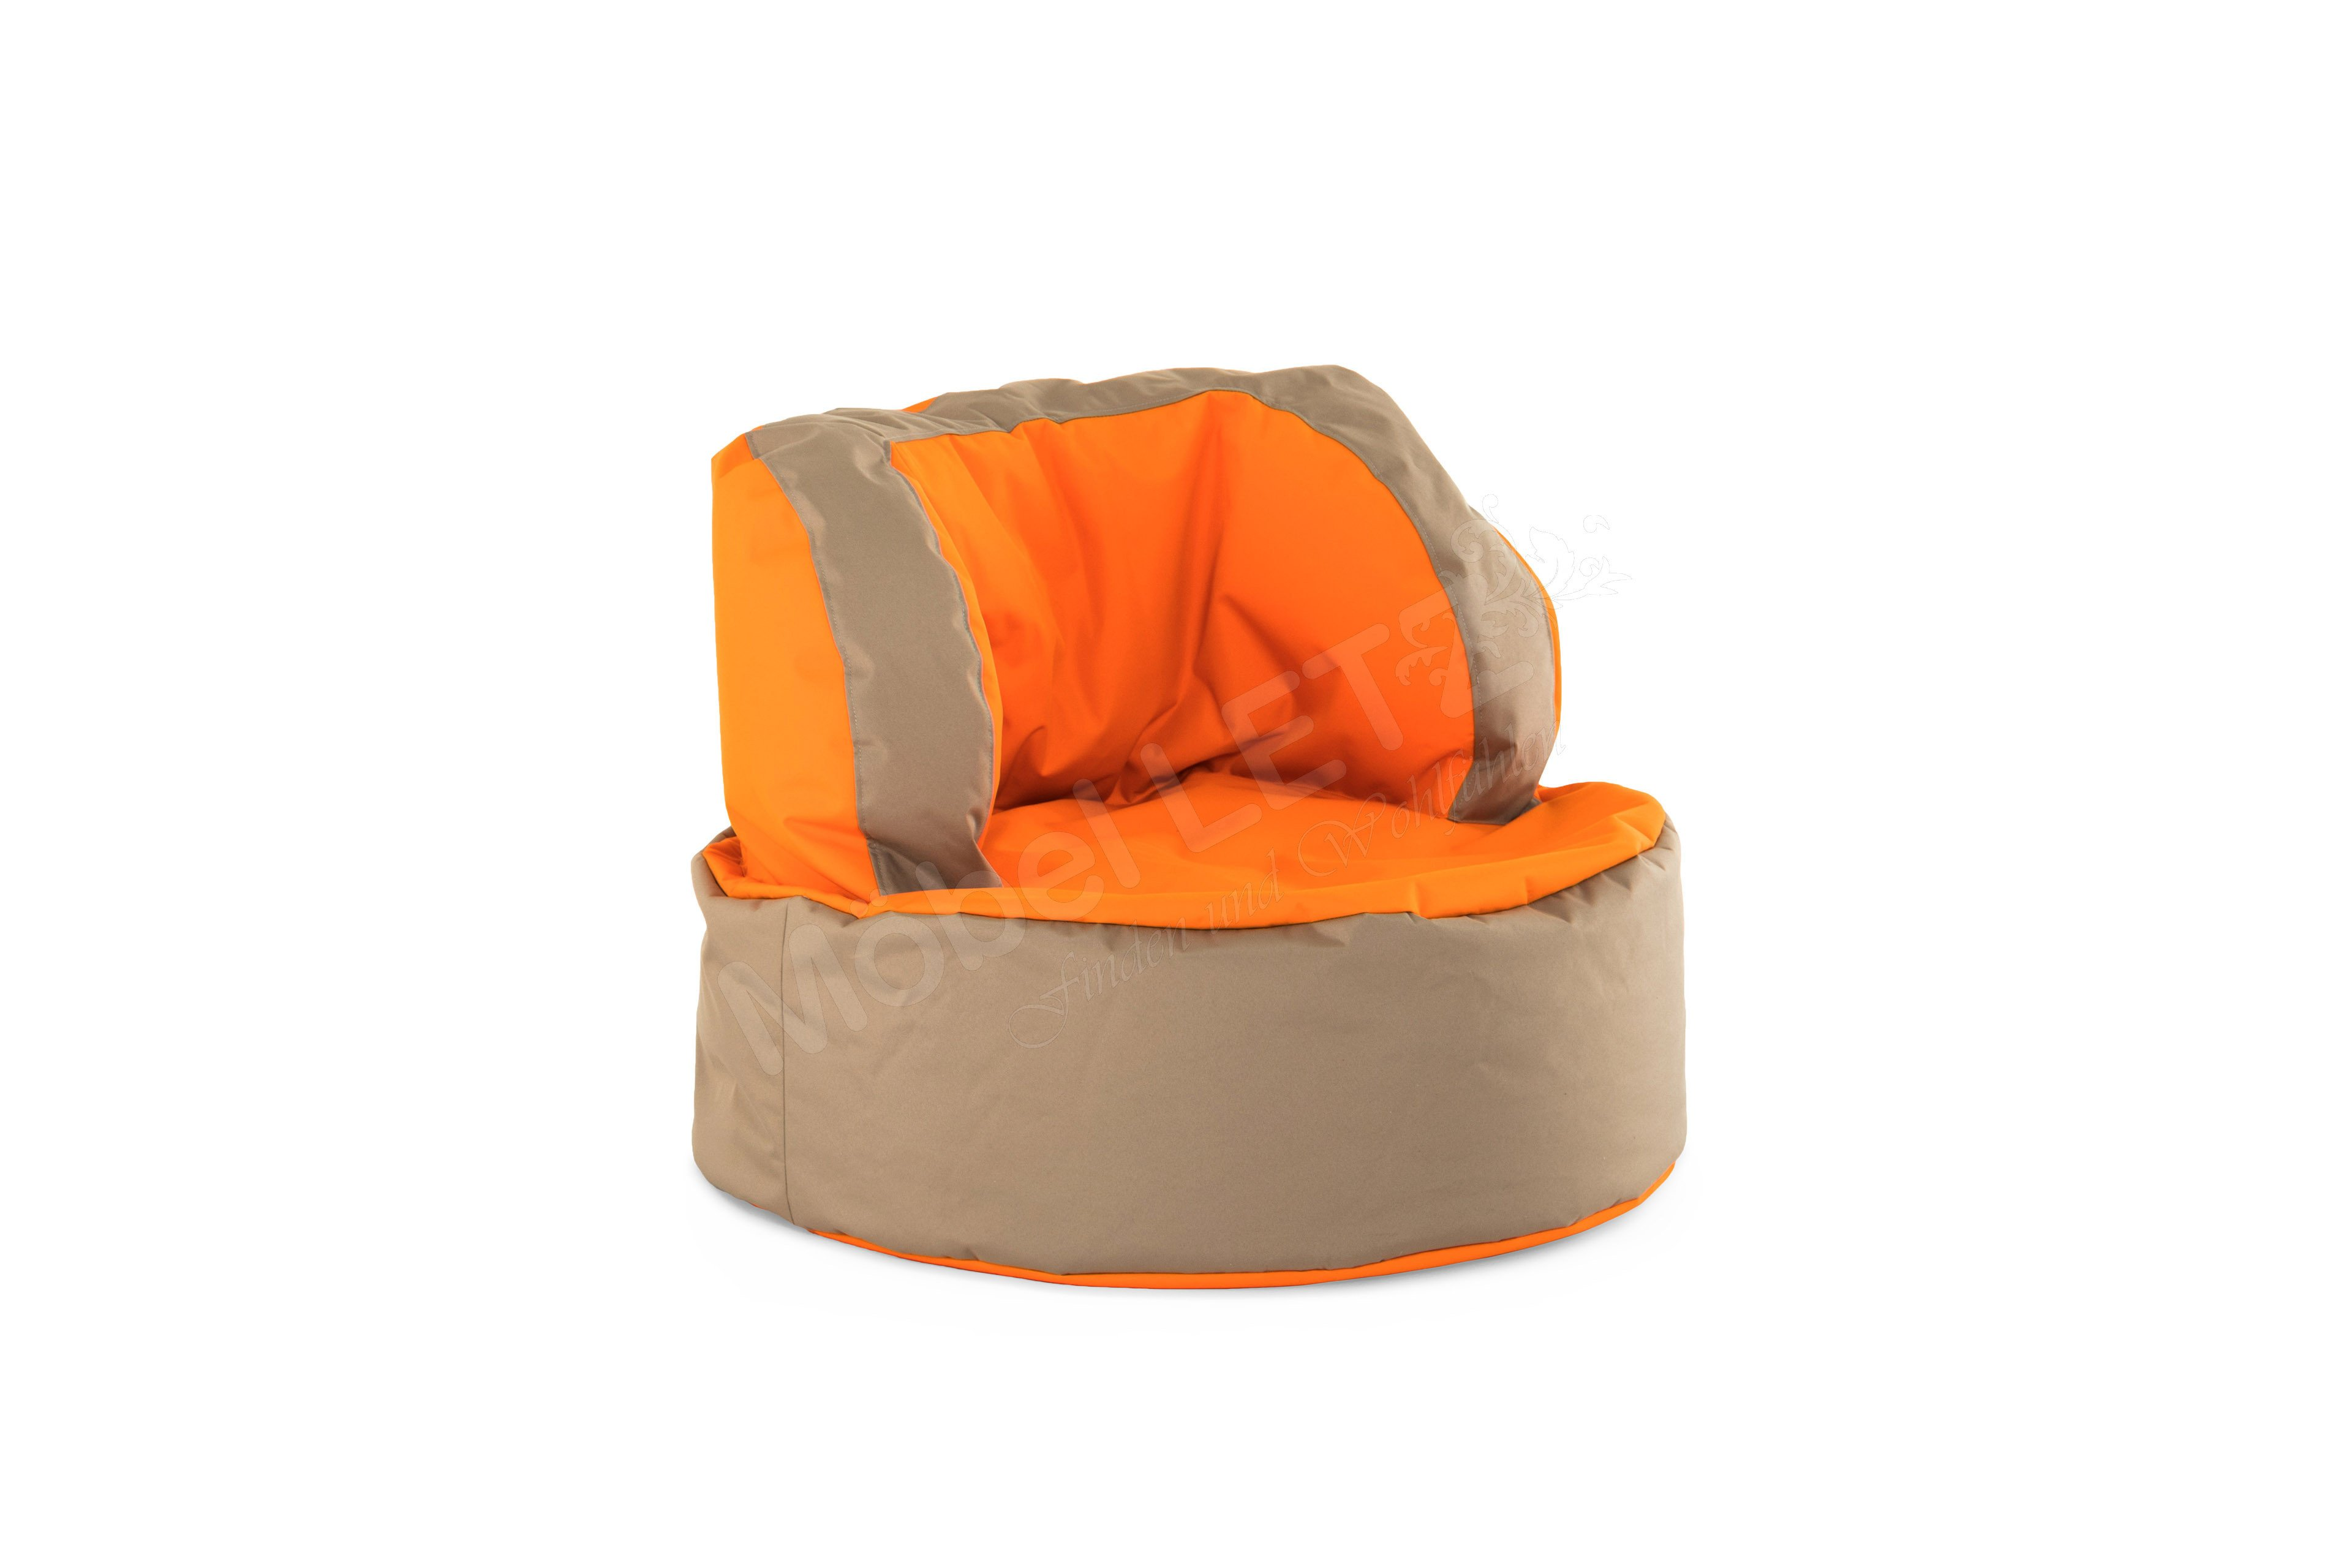 sitzsack bebop scuba orange von magma heimtex m bel letz ihr online shop. Black Bedroom Furniture Sets. Home Design Ideas